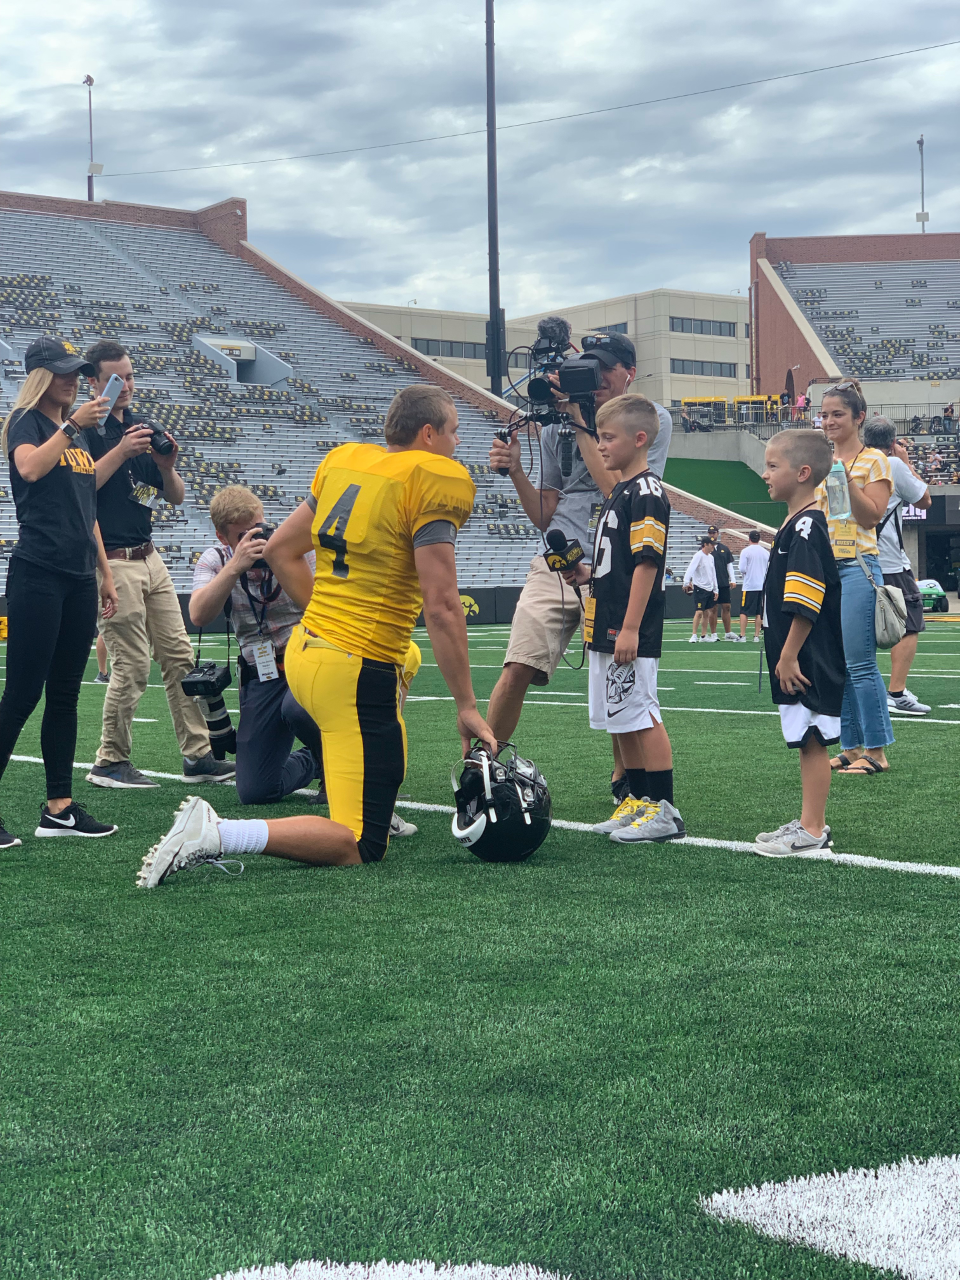 Iowa quarterback Nate Stanley talks to fans at Kids' Day at Kinnick Stadium on Saturday, August 10, 2019.